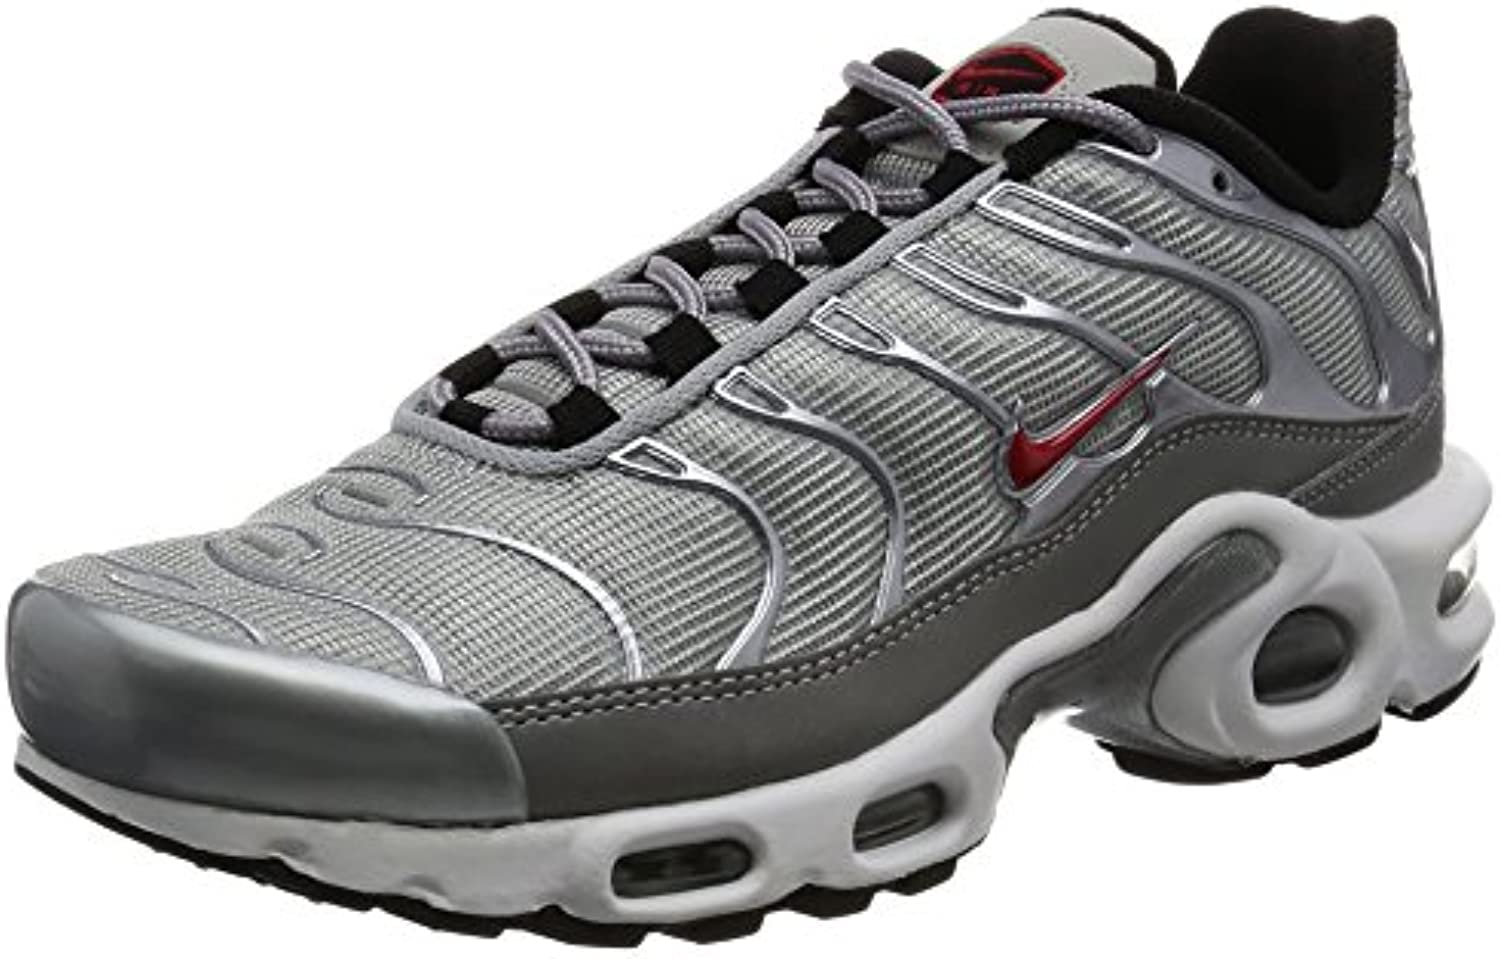 Nike Mujer Air Max Plus QS Zapatillas Running 887092 Zapatillas